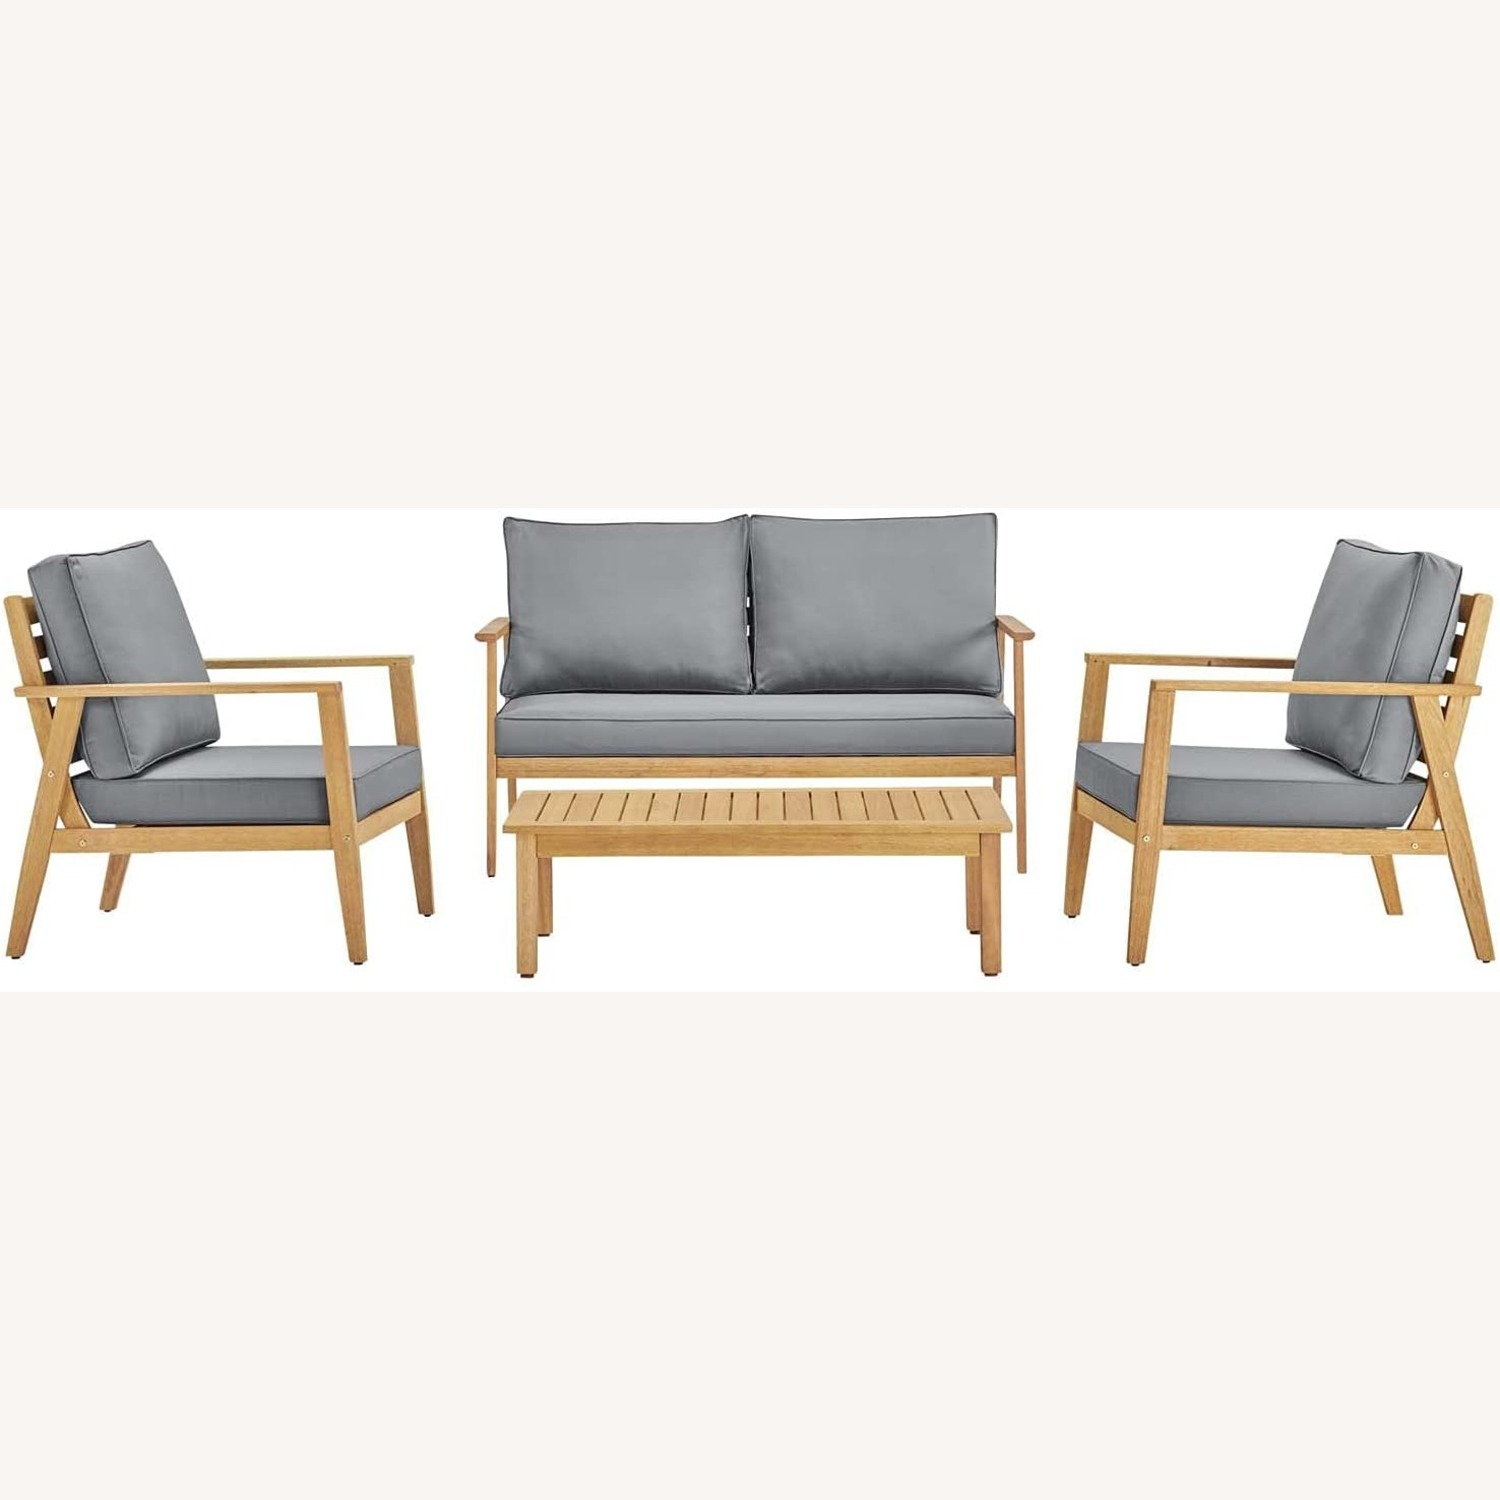 4-Piece Outdoor Patio Set In Natural Gray Wood - image-0